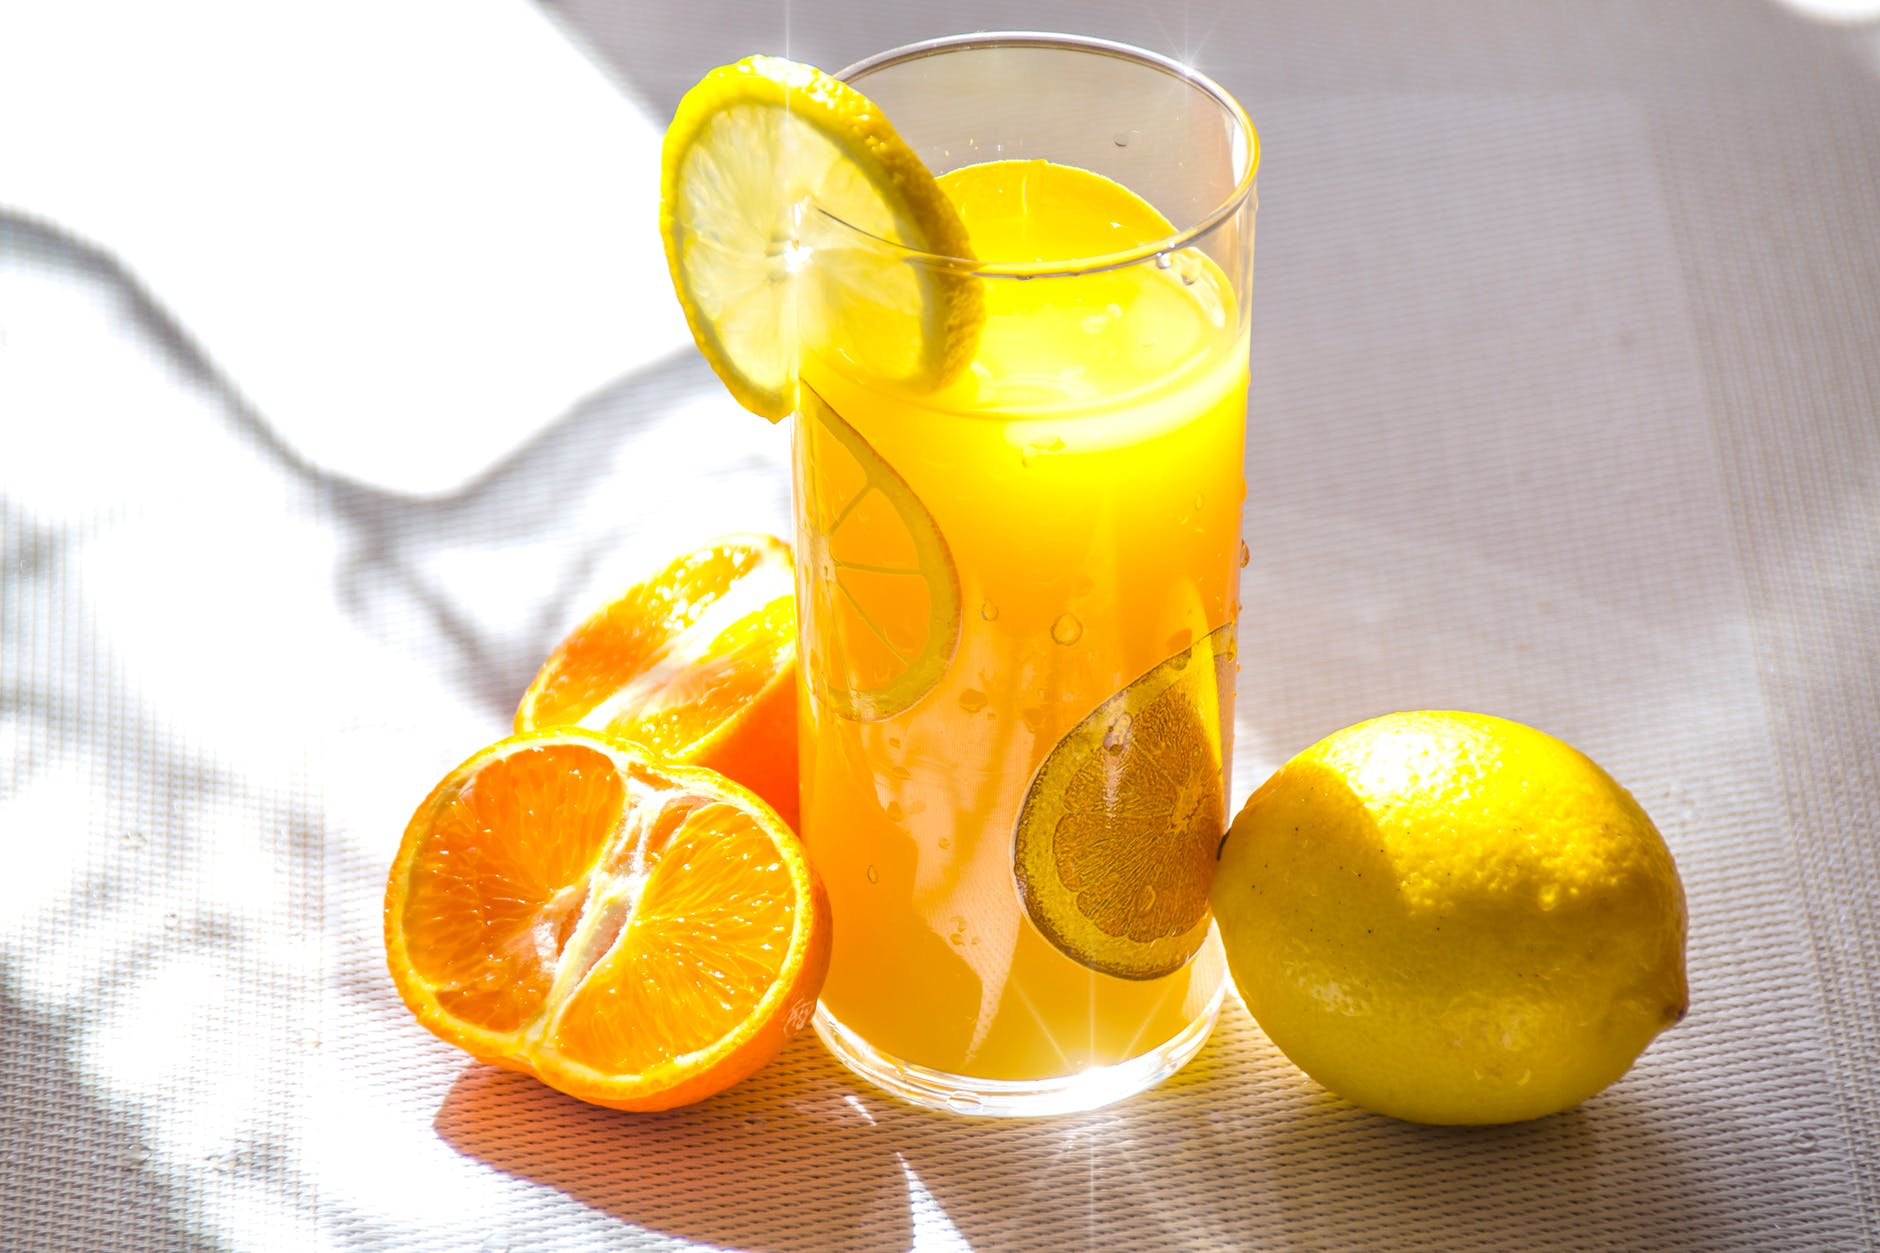 Glas vol met sinaasappelsap/jus d'orange vol met ongezonde suikers.